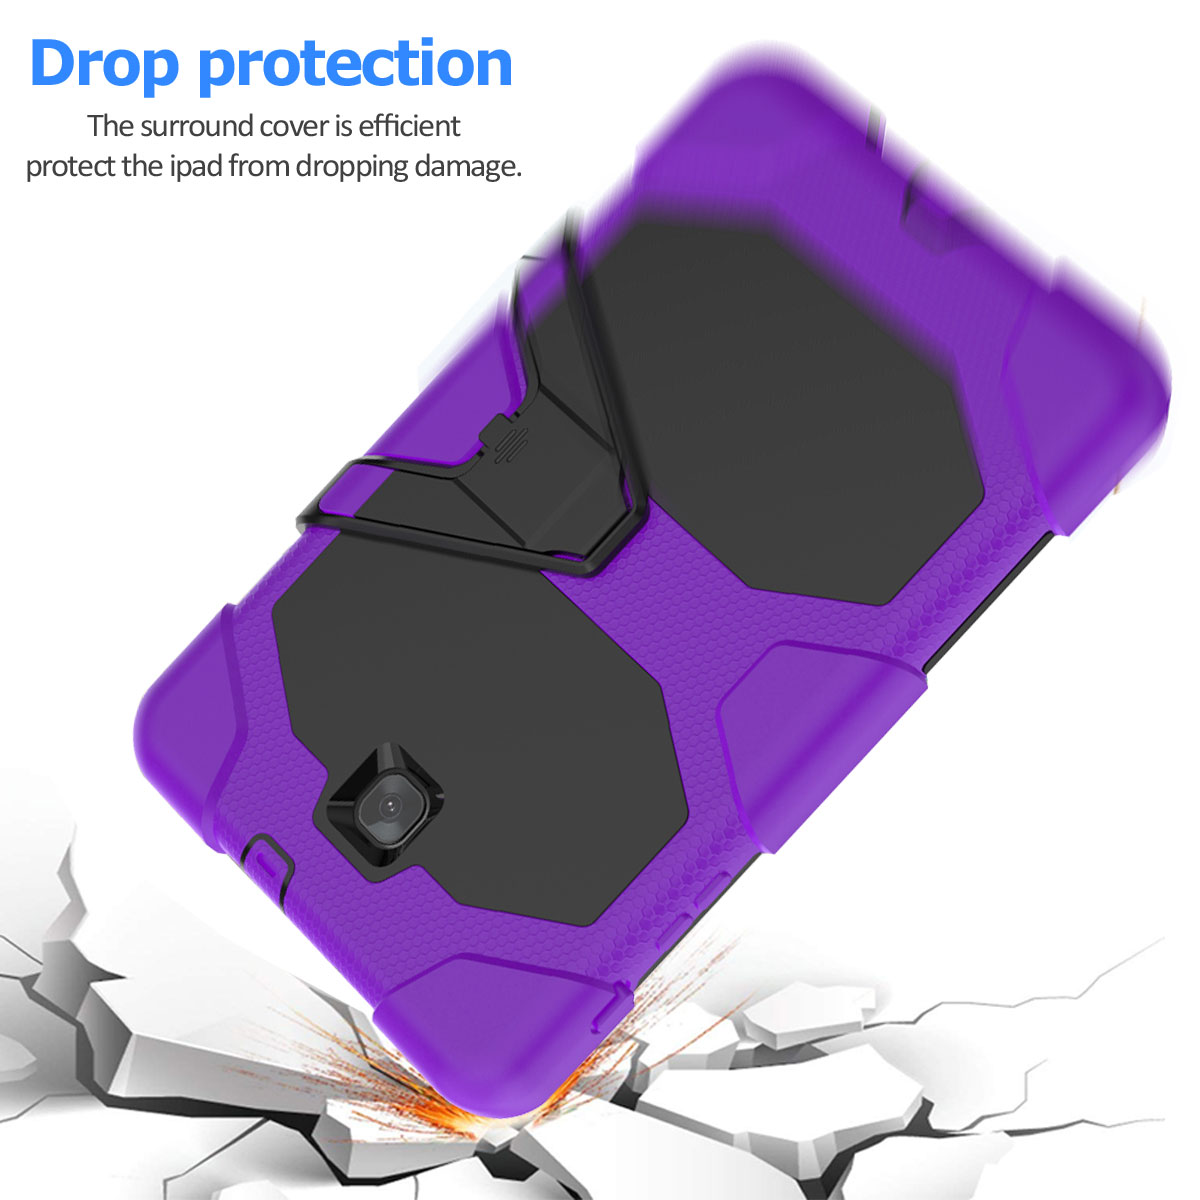 Rugged-Hard-Case-For-Samsung-Galaxy-Tab-A-8-0-2018-SM-T387-with-Screen-Protector thumbnail 33